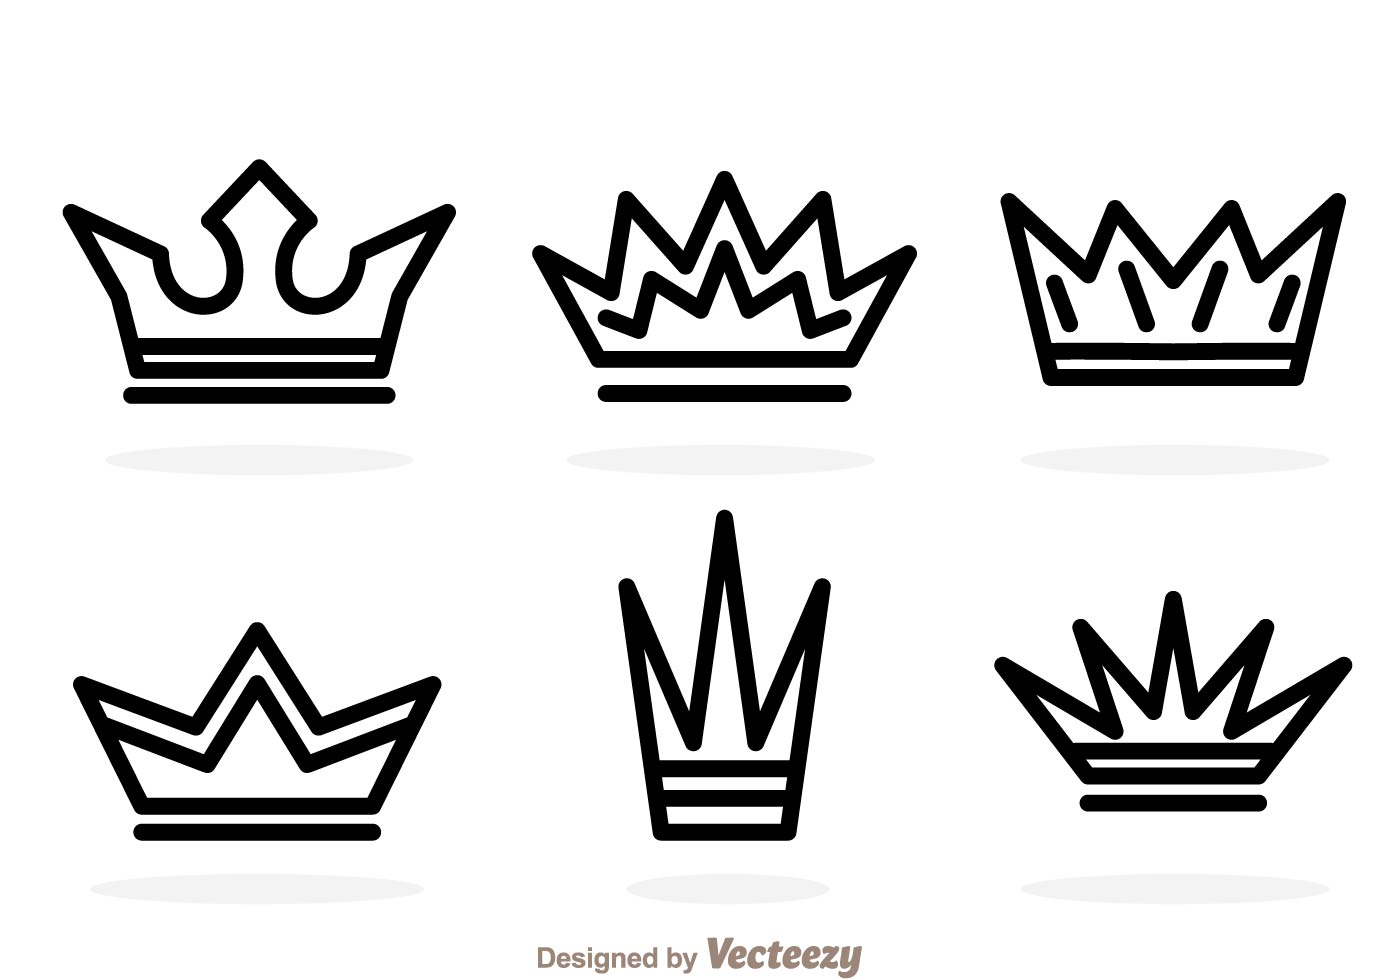 401510988 moreover 93841 Outline Crown Logo Vectors furthermore Pre Made Logos in addition Stock Image Decorative Ornate Crown Vector Vintage Image38920241 likewise Nativity Scene Silhouette Vector 11472479. on gold crown logo